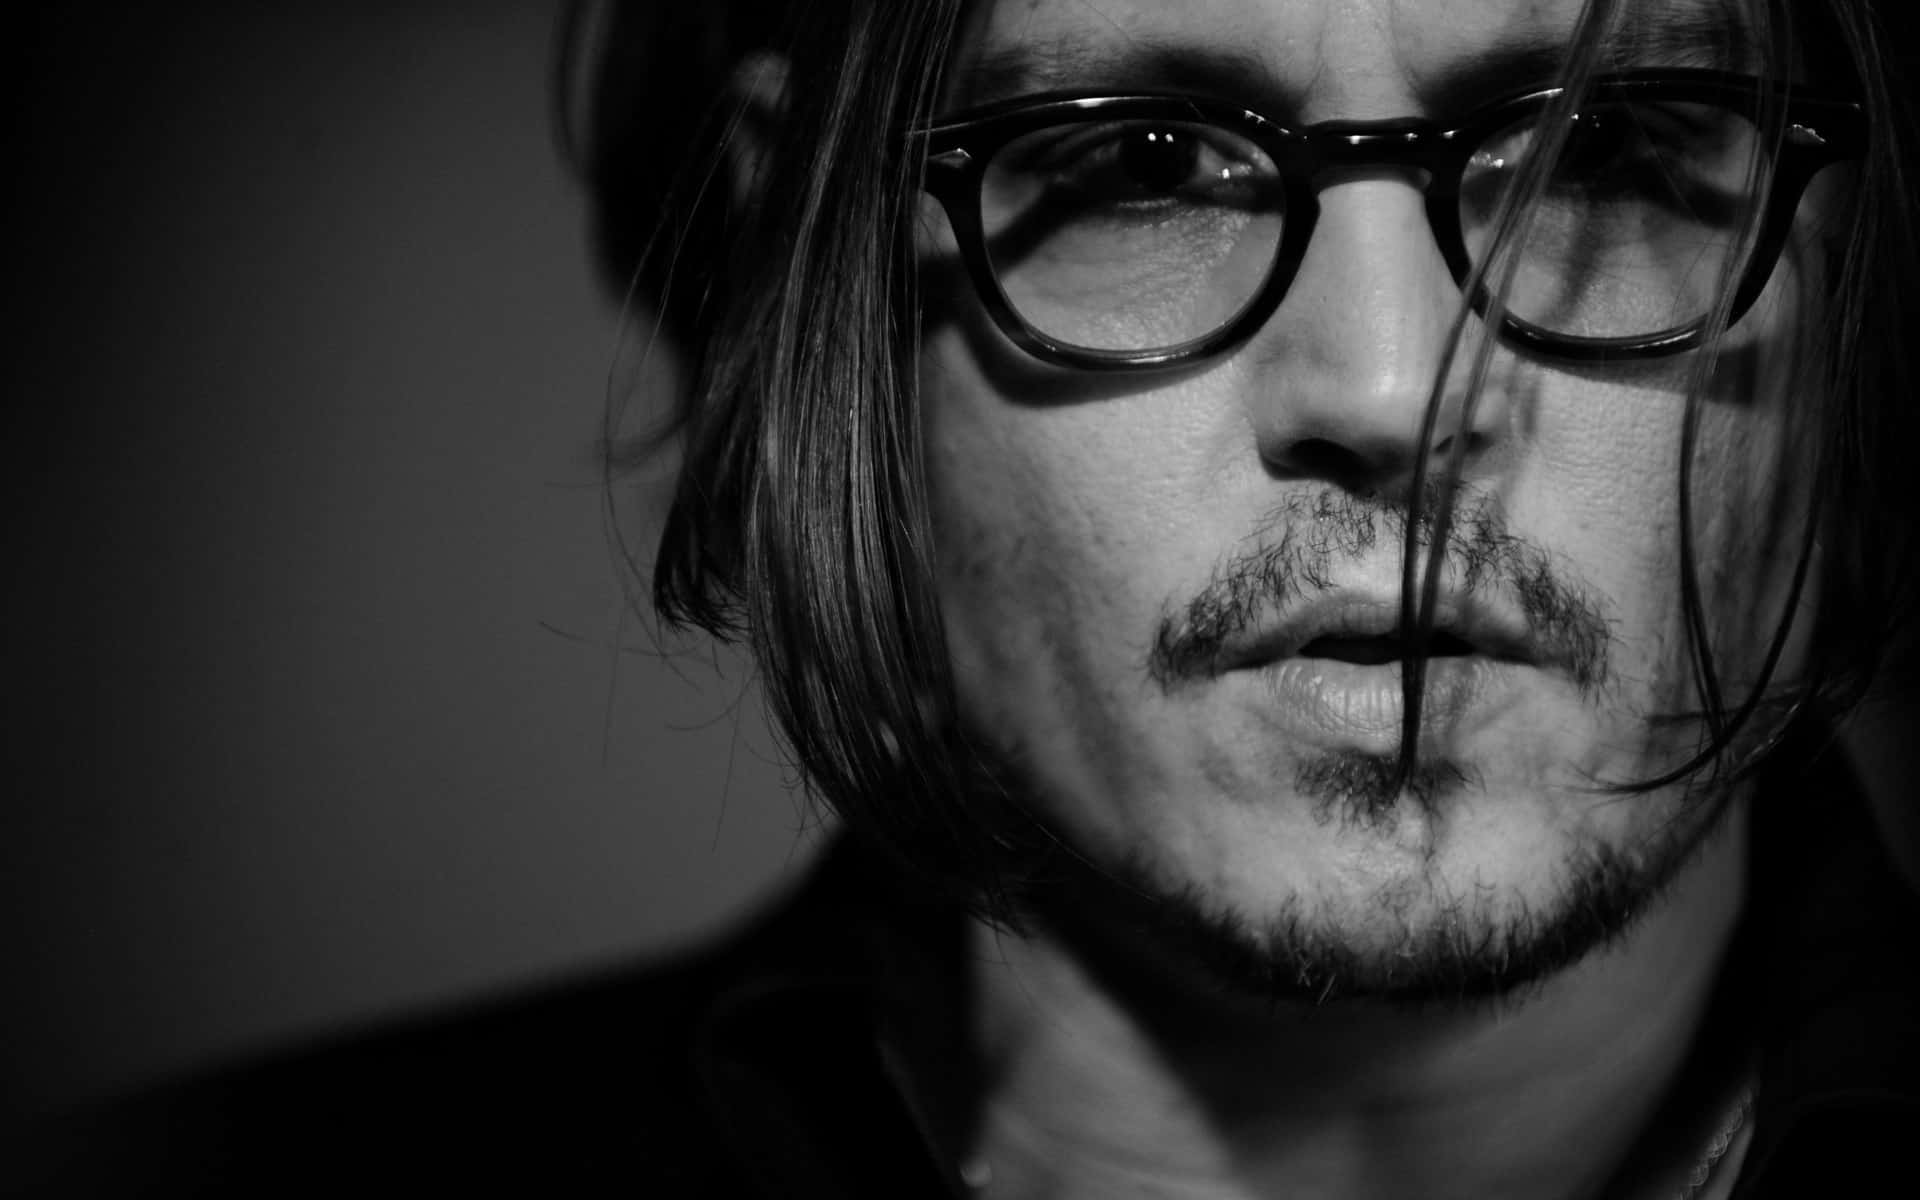 Top 21 Most Inspiring Johnny Depp Quotes